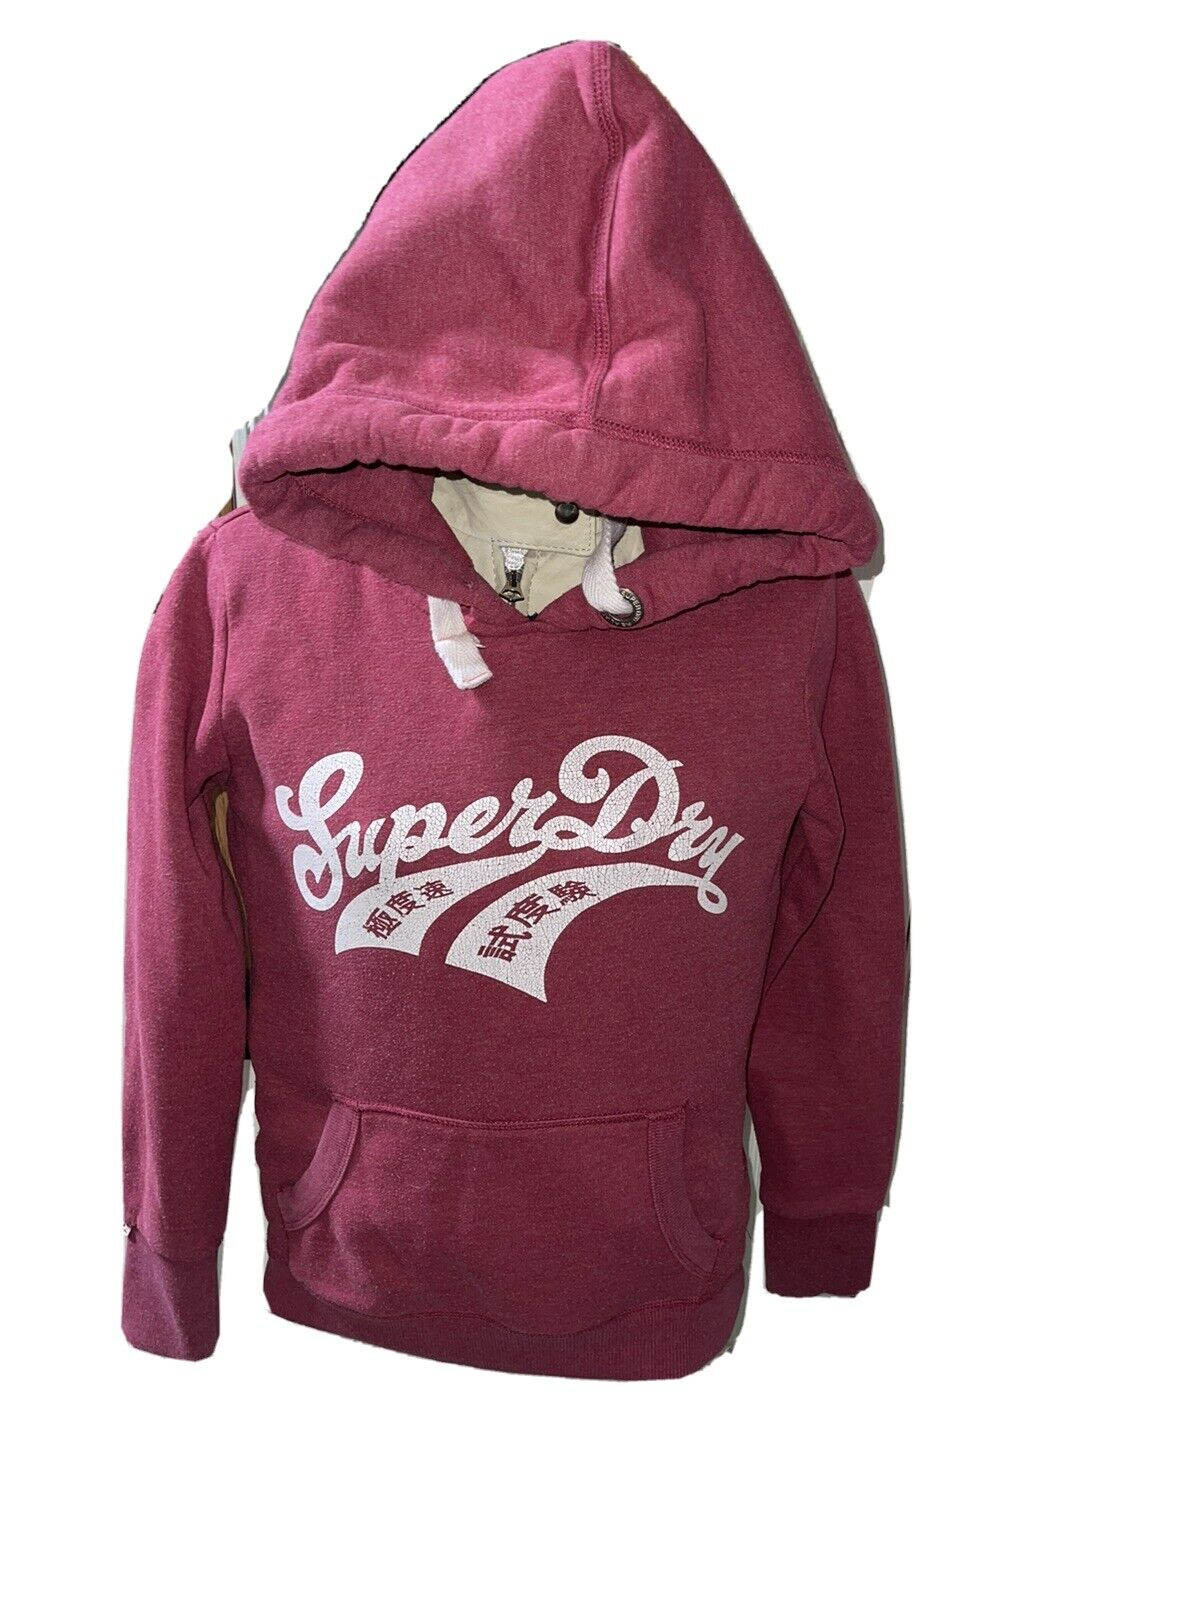 Womens Superdry Original Pullover Hoodie Colour Red/pink Size M (12) Good Con